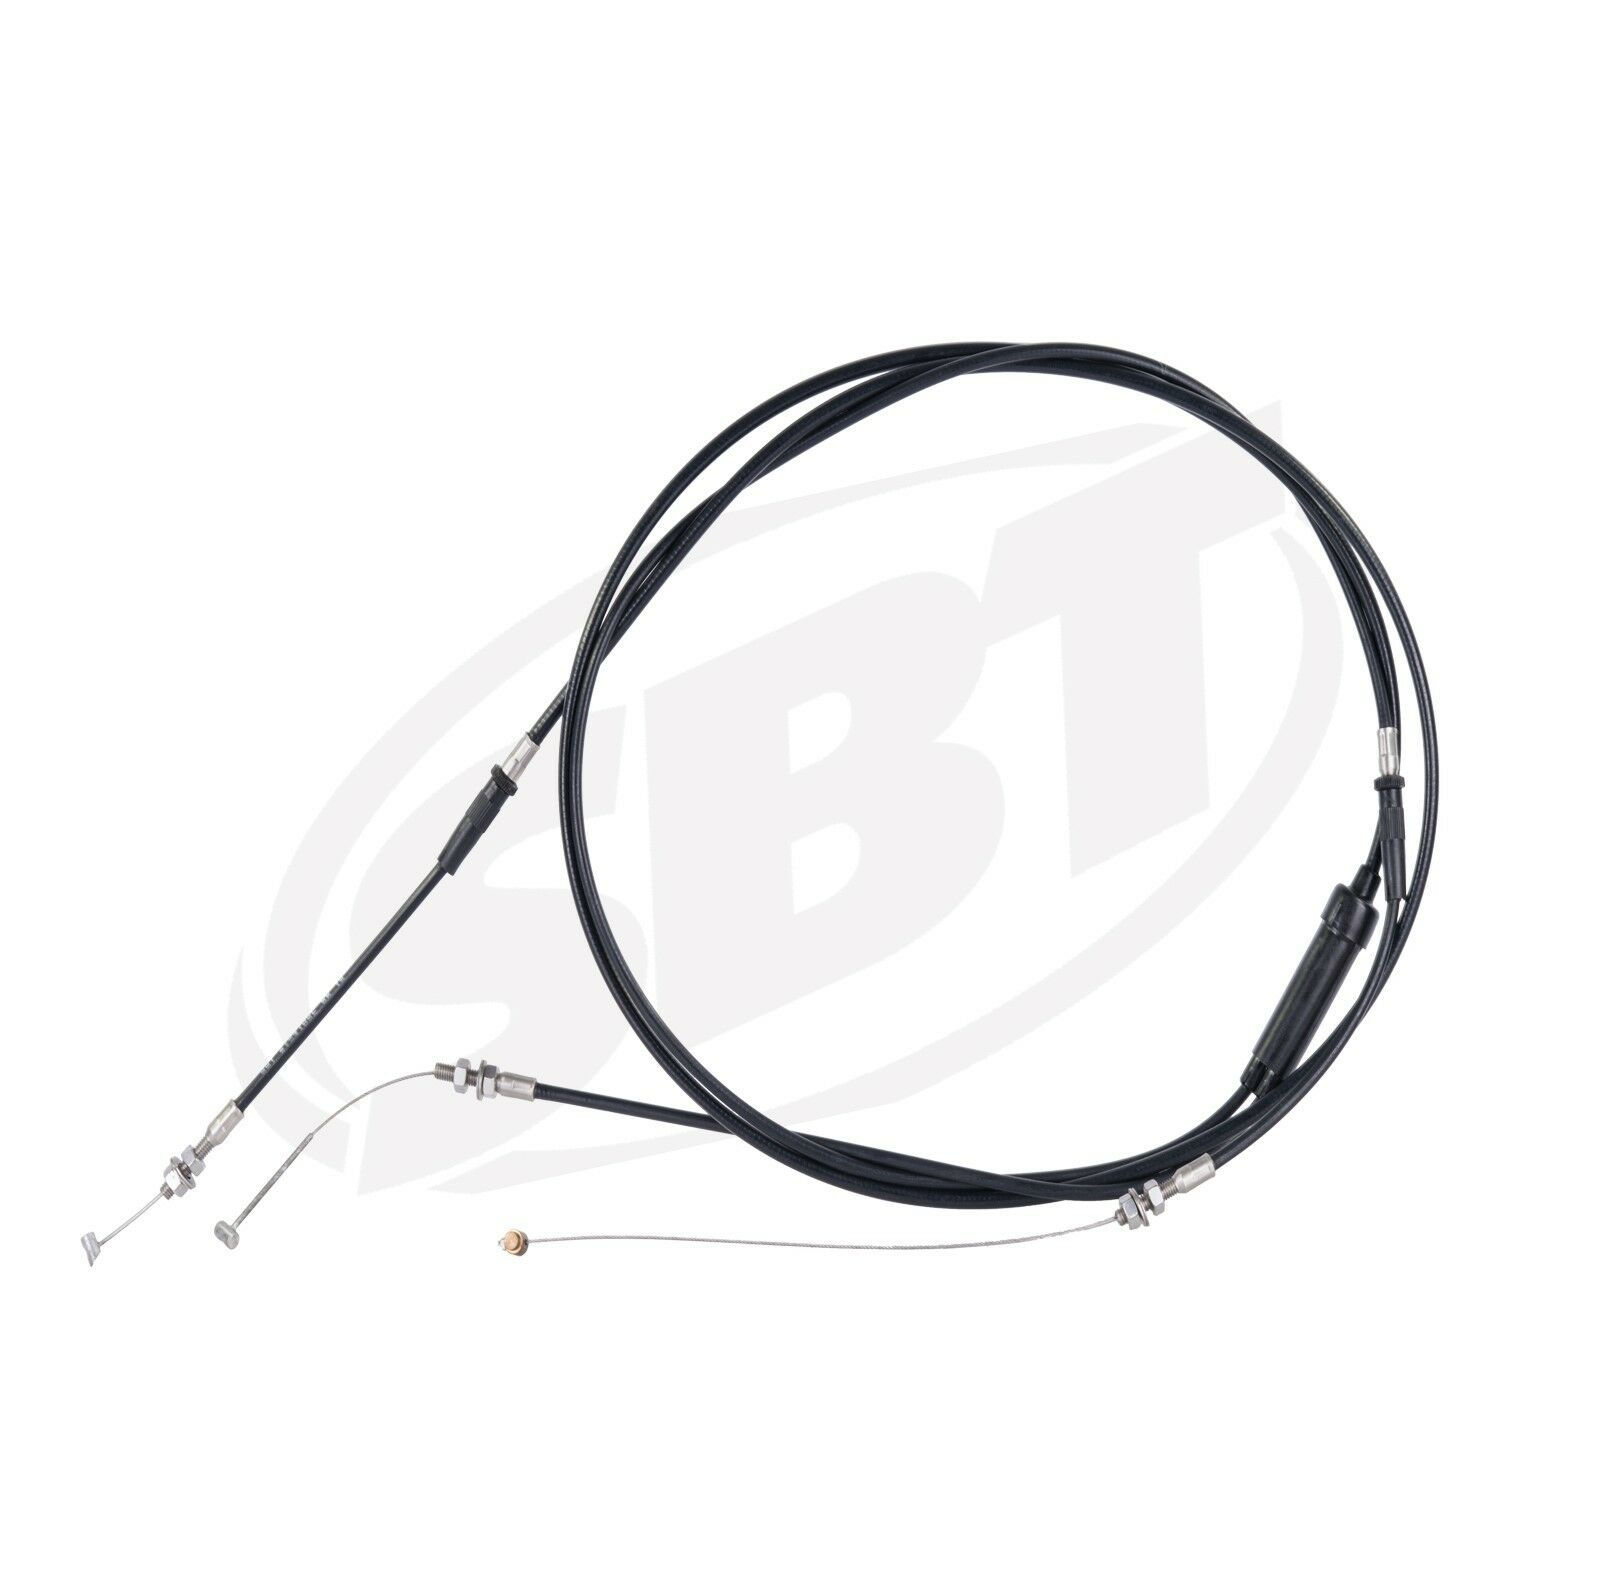 Seadoo Throttle Cable 1997 Speedster/2002 Sportster LT